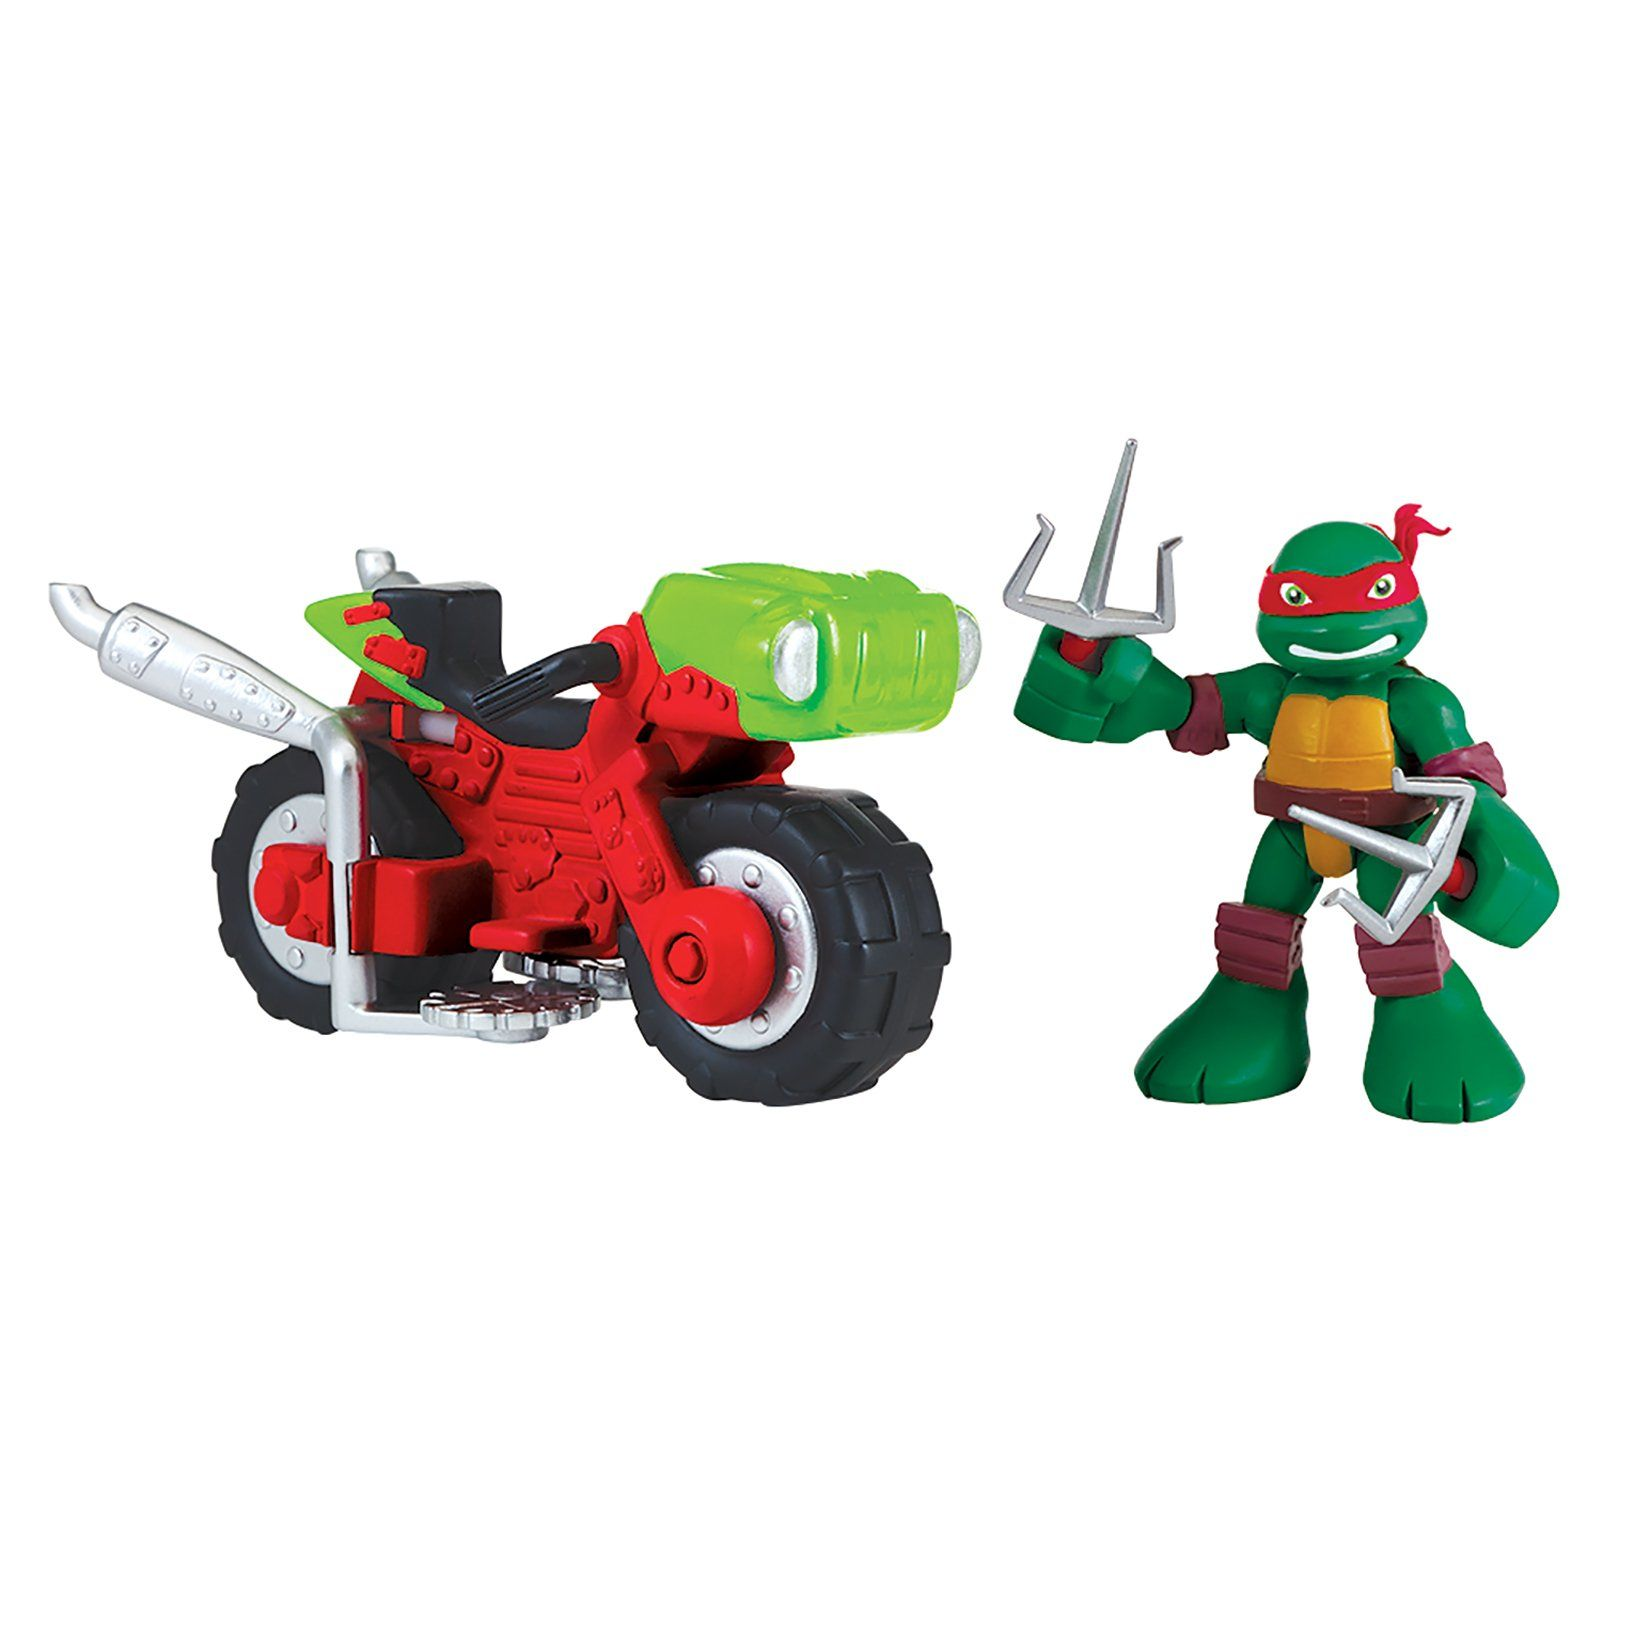 Nickelodeon Teenage Mutant Ninja Turtles TMNT Stealth Bike Raphael Action Figure